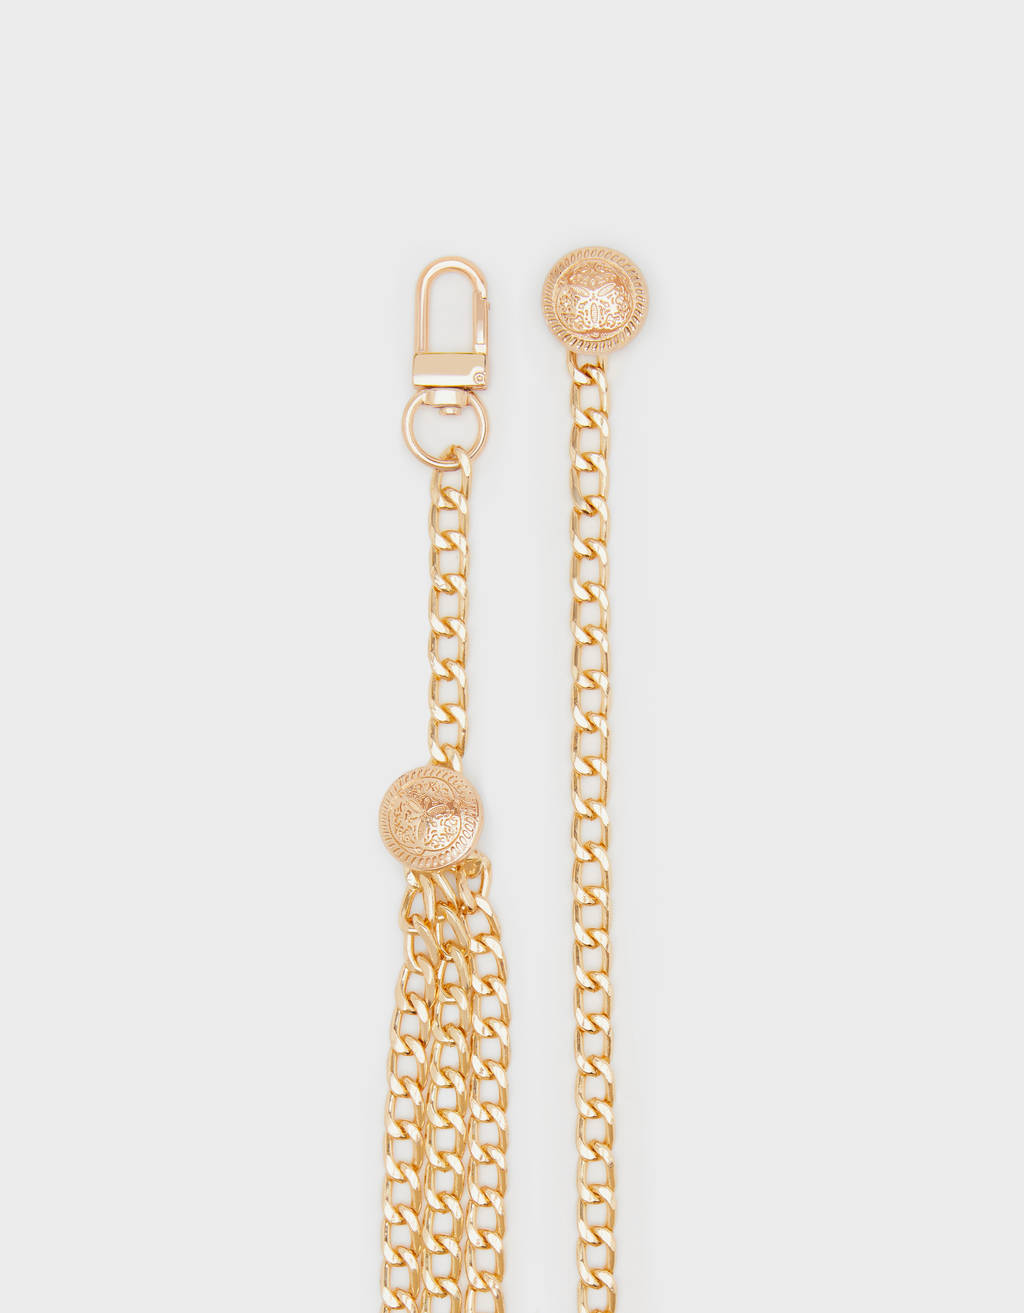 Gold-toned chain